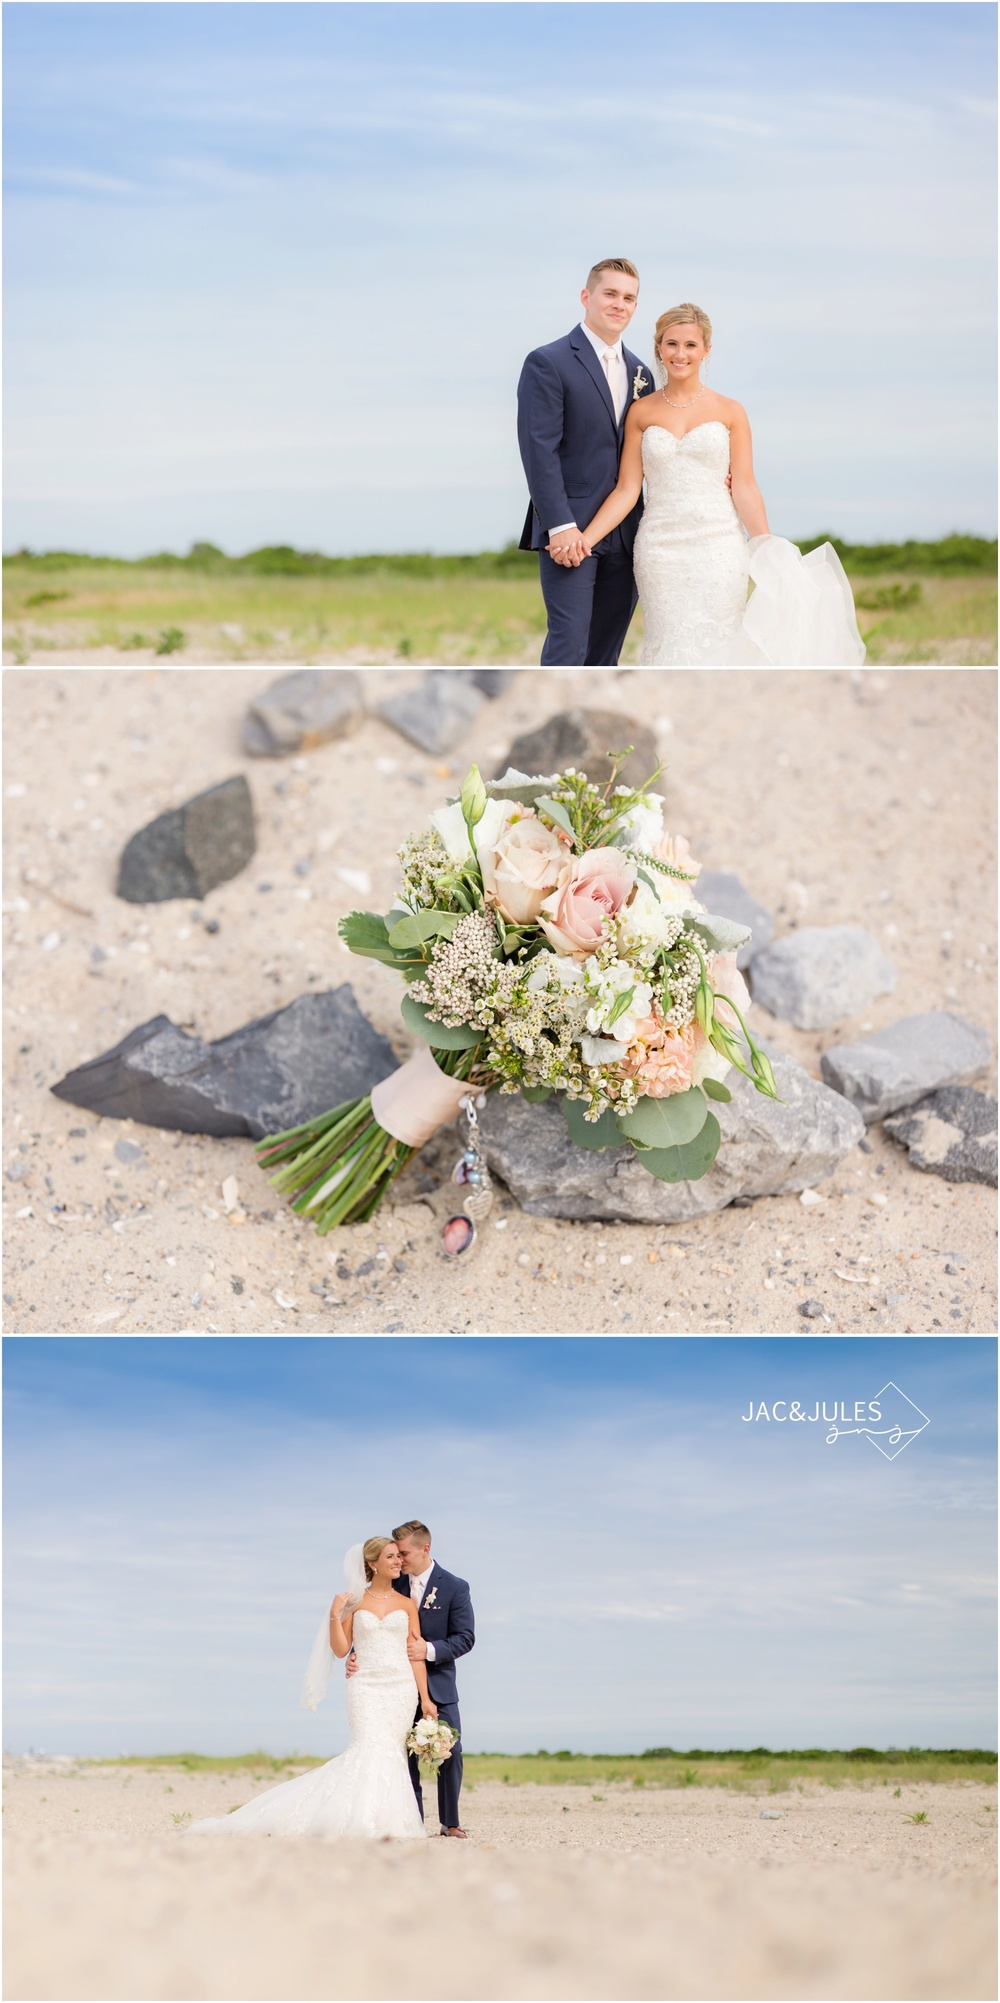 Bride and Groom at Barnegat Lighthouse in LBI, NJ for wedding day photos on the beach.